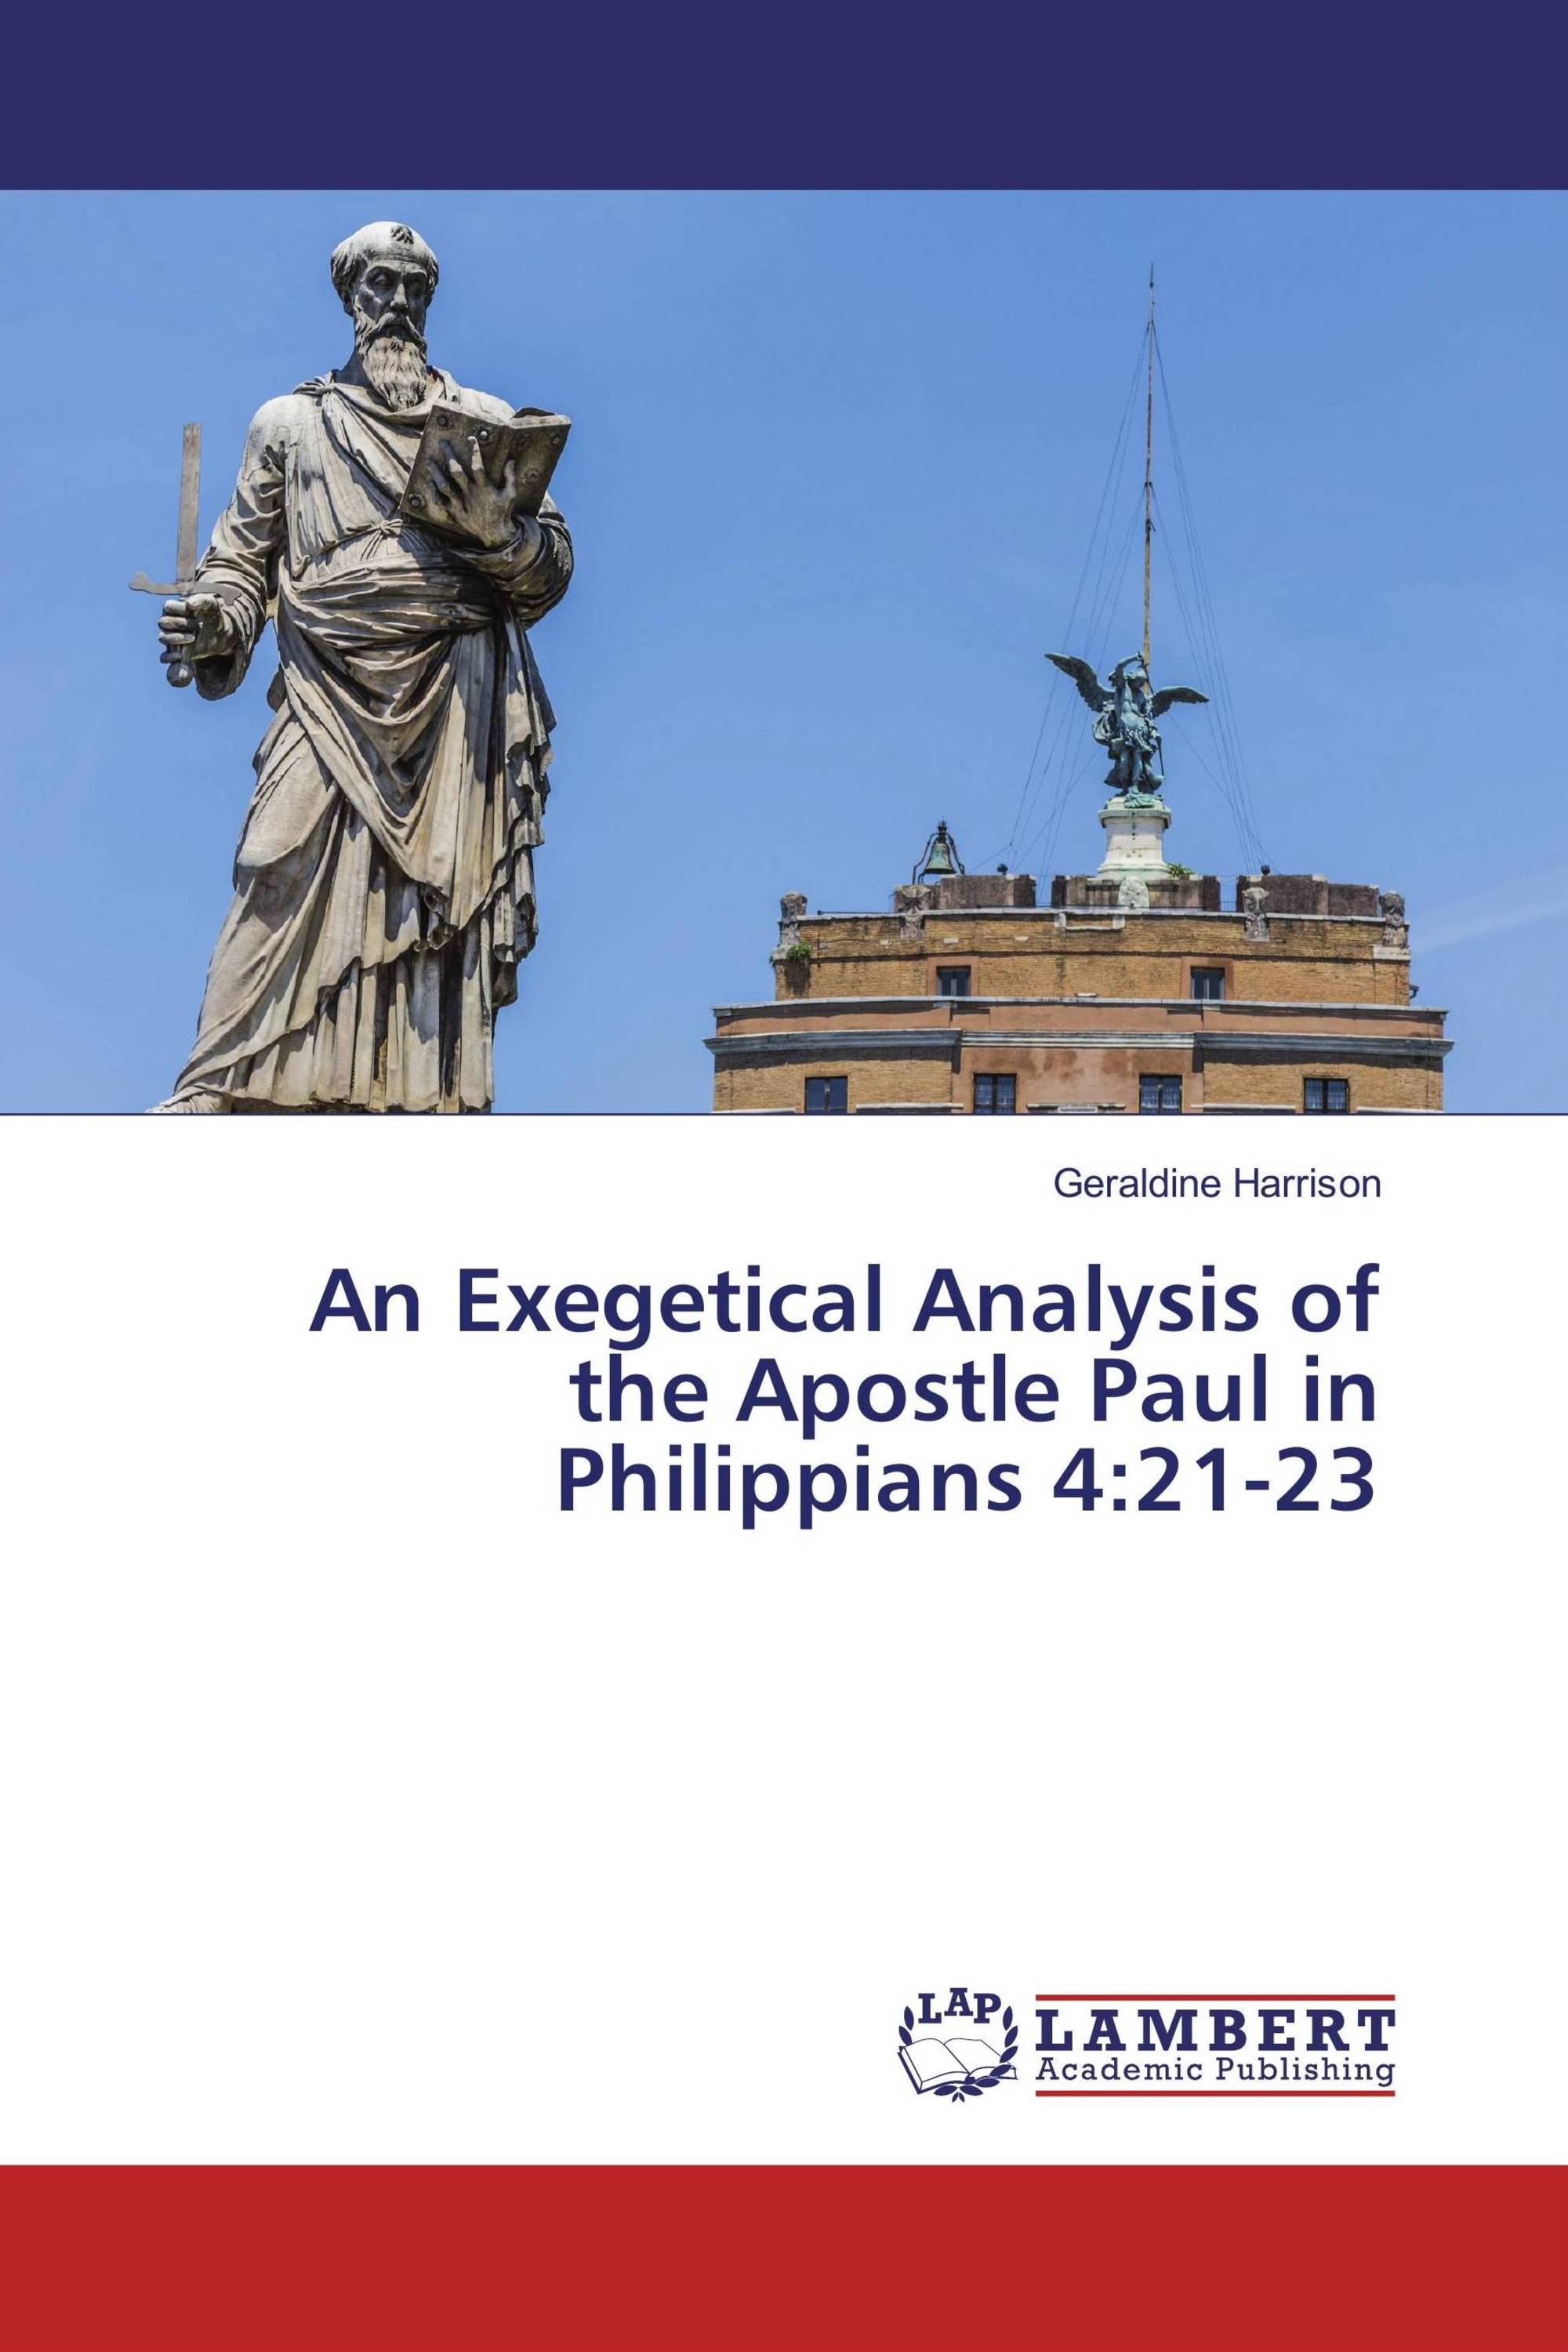 exegetical paper on philippians 21 11 The spiritual application of the breastplate is noteworthy paul urges believers to put on the righteousness which is from god in faith (philippians 3:8-9) this type of righteousness cannot be attained by attempts at moral rectitude apart from faith in god.